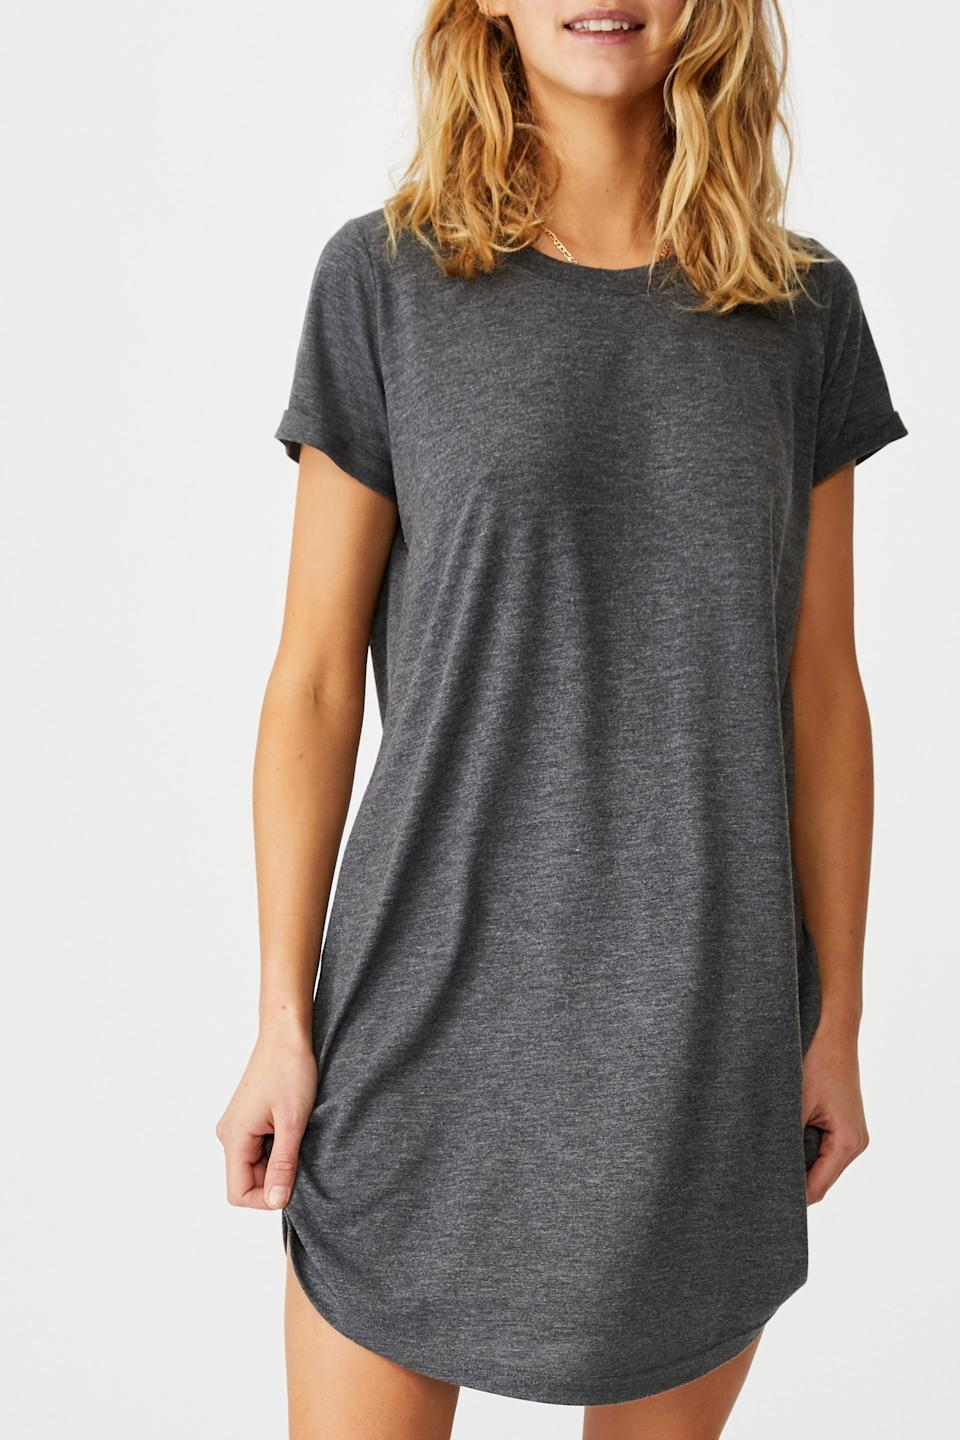 """<h2>Cotton On Cotton T-Shirt Dress</h2><br>Cotton On's Tina T-shirt dress is the all-year-round closet staple that frugal shoppers need in their wardrobe. Its slouchy fit lets you breathe in the summer heat and makes room for thick cozy layers in the winter. Cash in on tons of looks with just one $15 dress that'll take you from bed to couch and beyond. <br><br><em>Shop <strong><a href=""""https://cottonon.com/US/"""" rel=""""nofollow noopener"""" target=""""_blank"""" data-ylk=""""slk:Cotton On"""" class=""""link rapid-noclick-resp"""">Cotton On</a></strong></em><br><br><strong>Cotton On</strong> Tina T-shirt Dress, $, available at <a href=""""https://go.skimresources.com/?id=30283X879131&url=https%3A%2F%2Fcottonon.com%2FUS%2Ftina-tshirt-dress-2%2F248600-307.html"""" rel=""""nofollow noopener"""" target=""""_blank"""" data-ylk=""""slk:Cotton On"""" class=""""link rapid-noclick-resp"""">Cotton On</a>"""